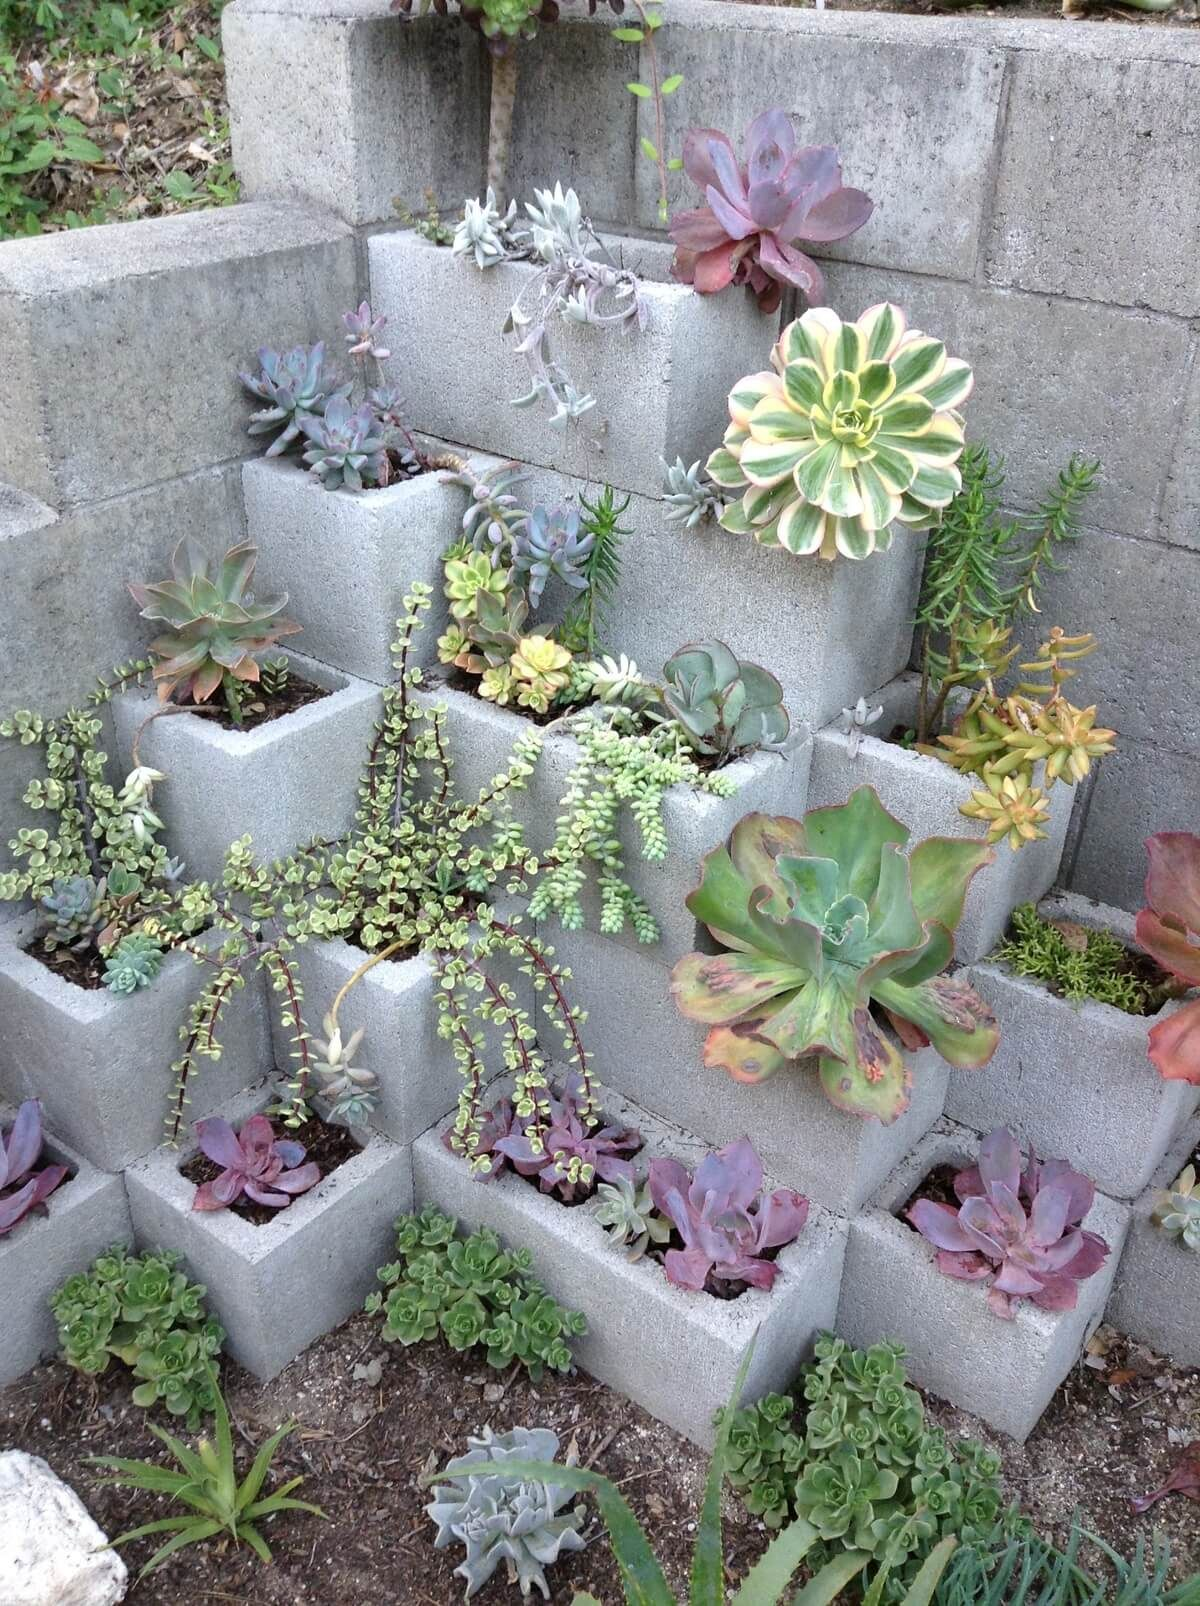 Awesome 33 Beautiful Built In Planter Ideas To Upgrade Your Outdoor Space